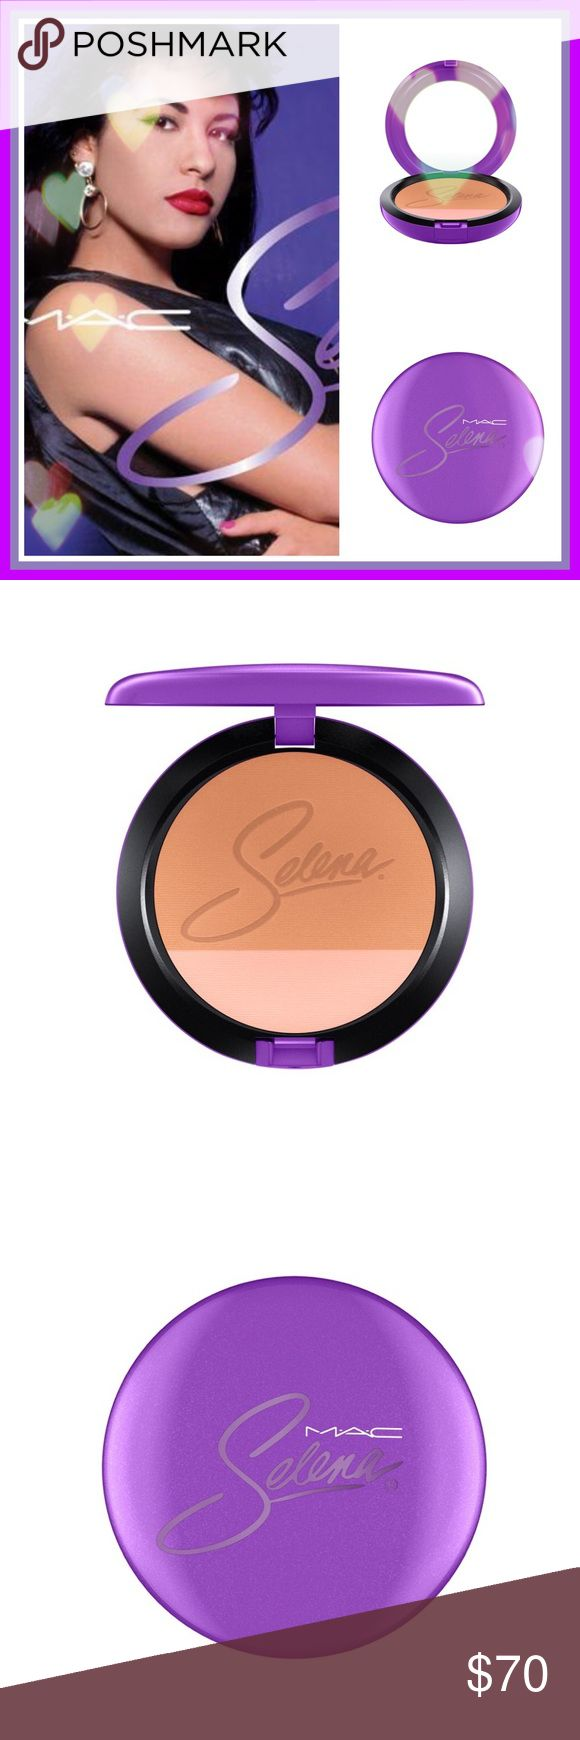 🌹MAC Selena Collection Techno Cumbia Bronzer BRAND NEW IN BOX. PURCHASED TWO FROM EBAY FOR $75. SO WORTH IT!!  THIS COLLECTION IS EVERYTHING AND SOLD OUT EVERYWHERE. 💜A VERY SPECIAL ITEM TO OWN💜🌹  Two shades in one compact. Designed by and for professionals to provide fantastic colour with ease and consistency. Applies evenly, adheres lightly to skin for a natural-looking application of colour that stays put all day. Specially packaged in purple featuring Selena's signature in lavender…